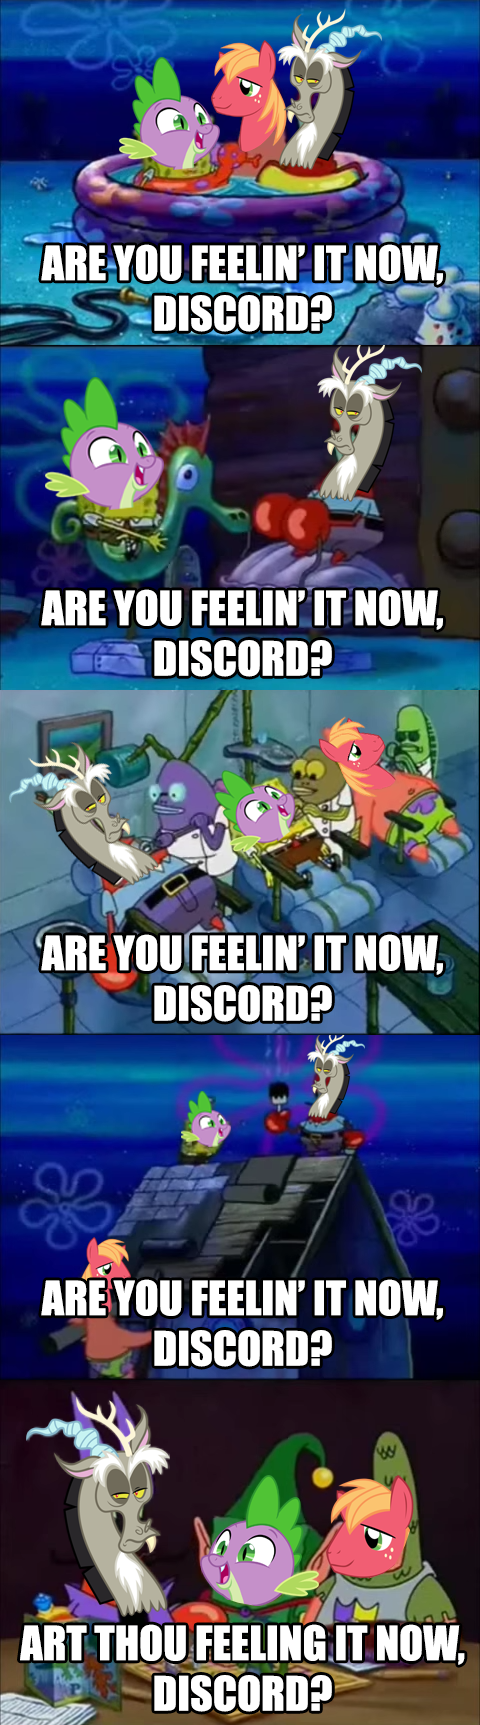 spike,discord,SpongeBob SquarePants,Big Macintosh,comic,dungeons and discords